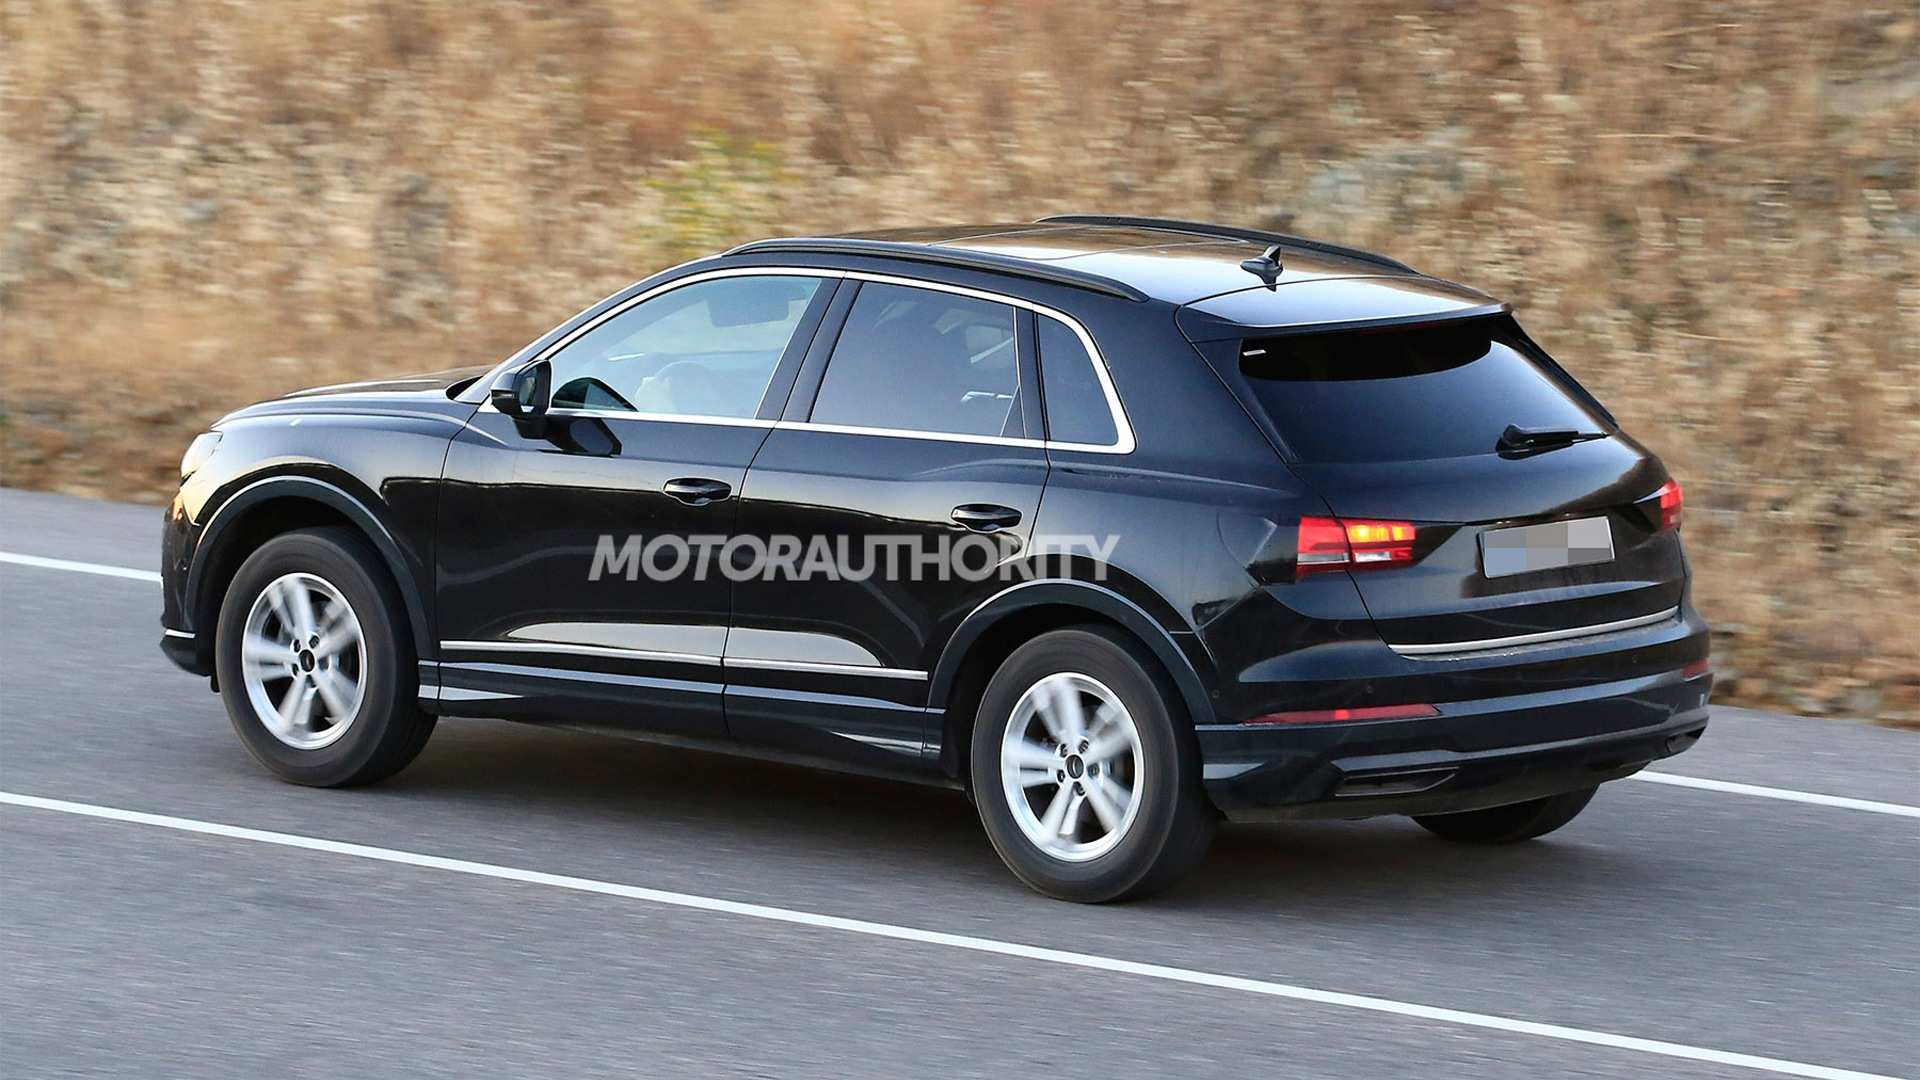 36 Gallery of 2020 Audi Q3 Release Date Review with 2020 Audi Q3 Release Date